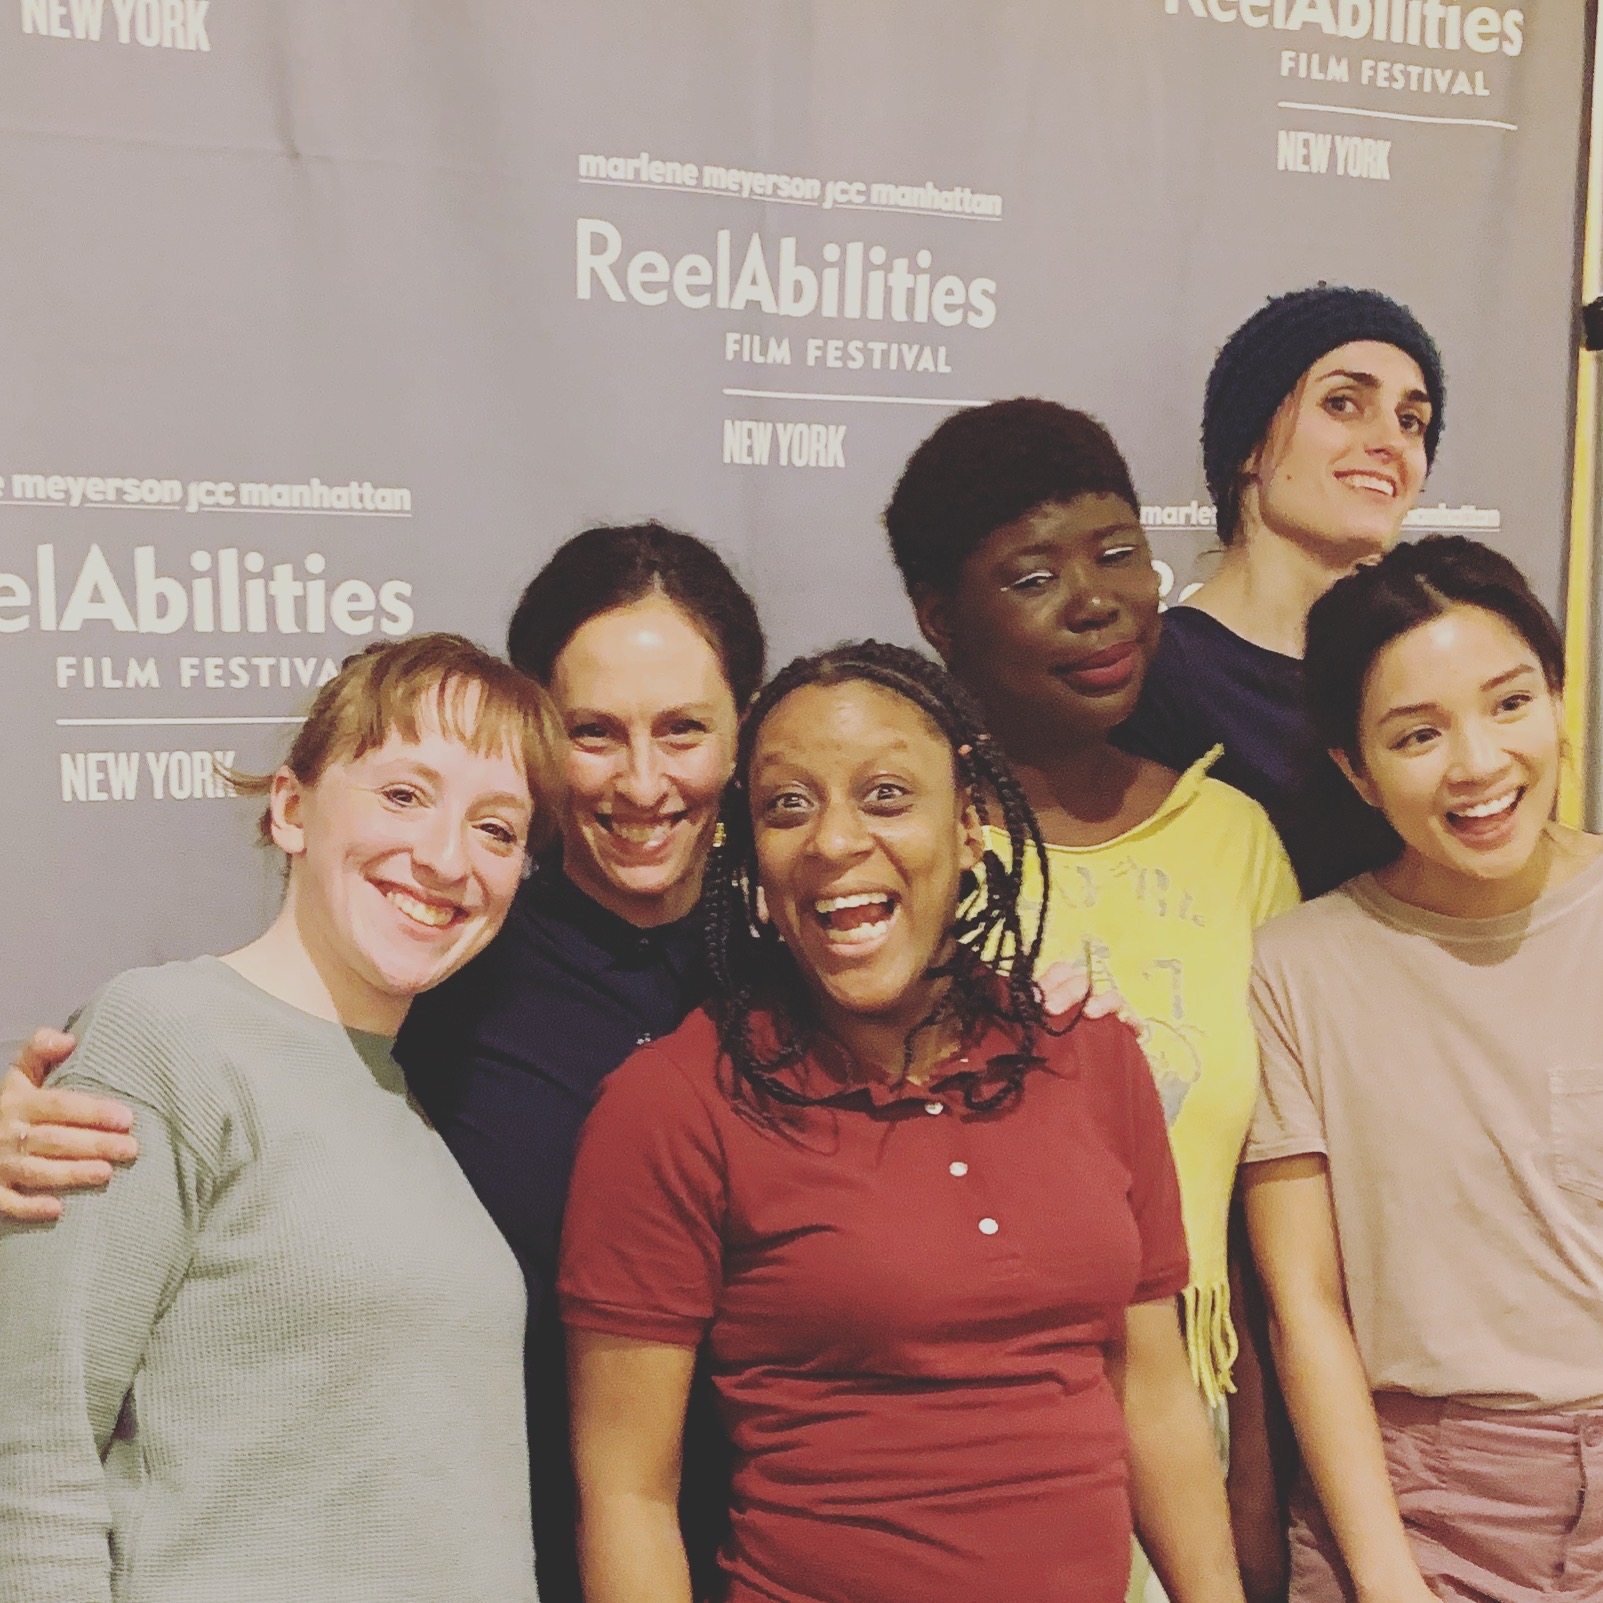 'OUR THING' @ the REEL ABILITIES FILM FESTIVAL, April 6, 2019